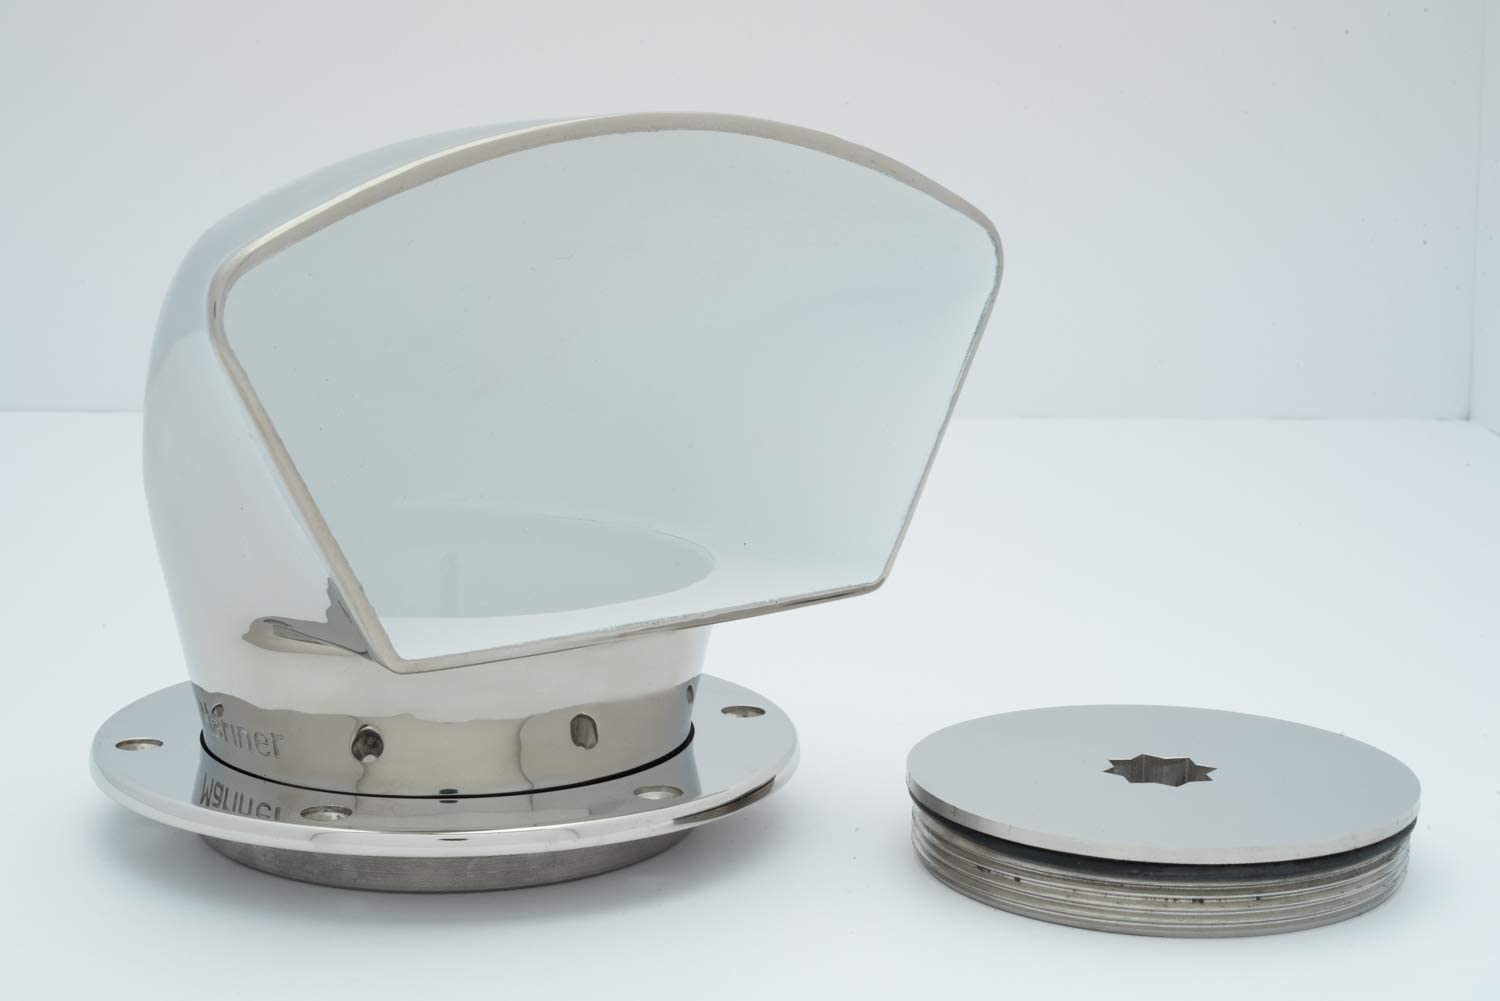 Buchan Marine Low Profile Cowl Vent with Deck Plate